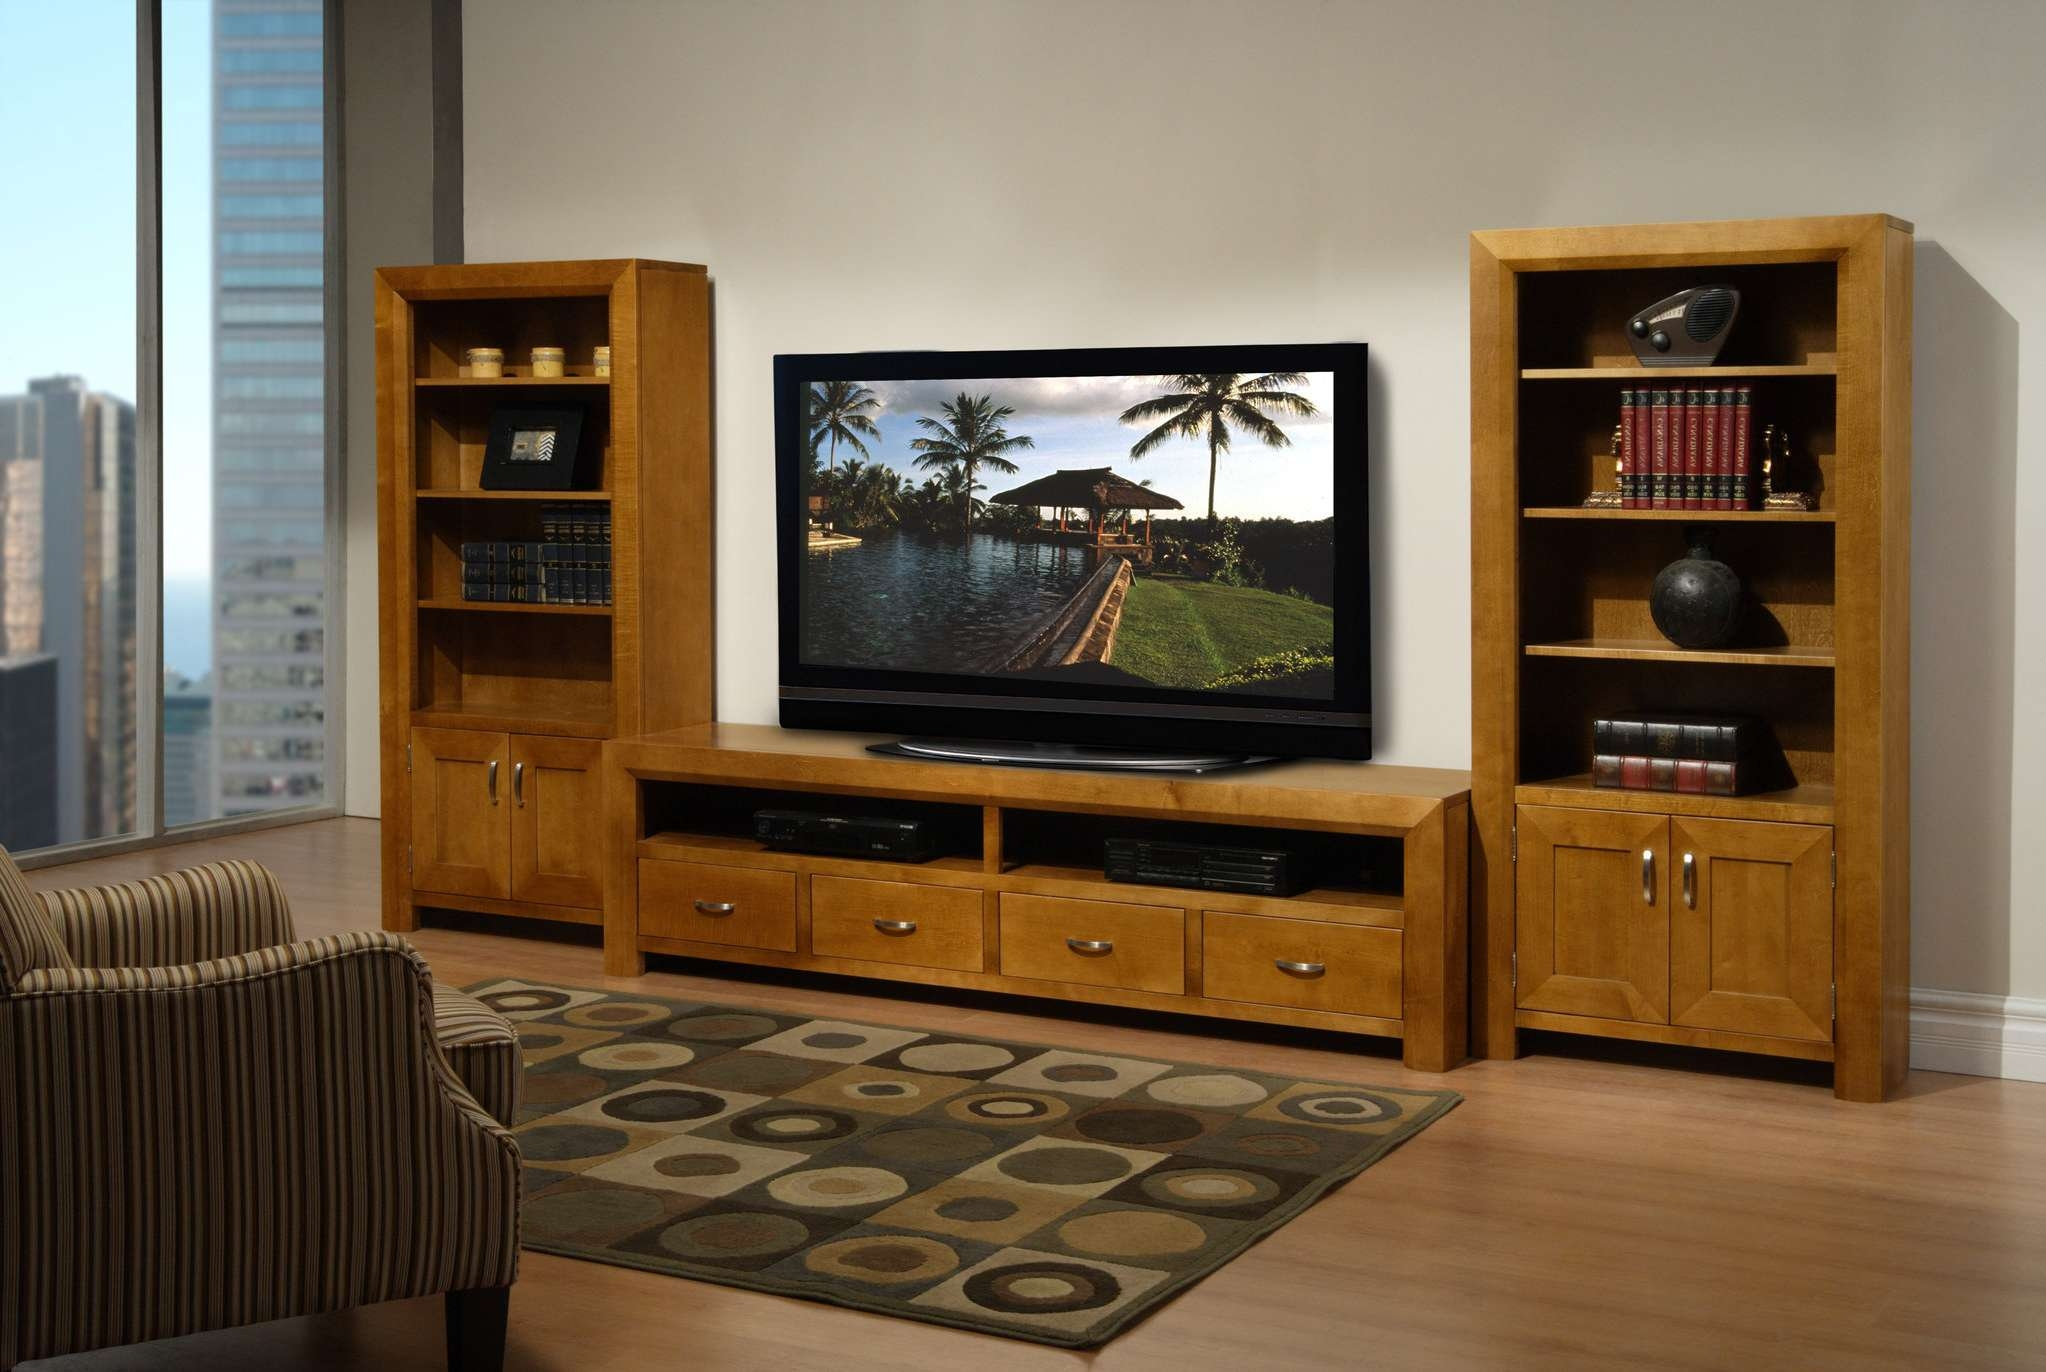 Flat Screen Tv Stands And Costco Console White Media Furniture Intended For Wooden Tv Stands For 55 Inch Flat Screen (View 3 of 15)